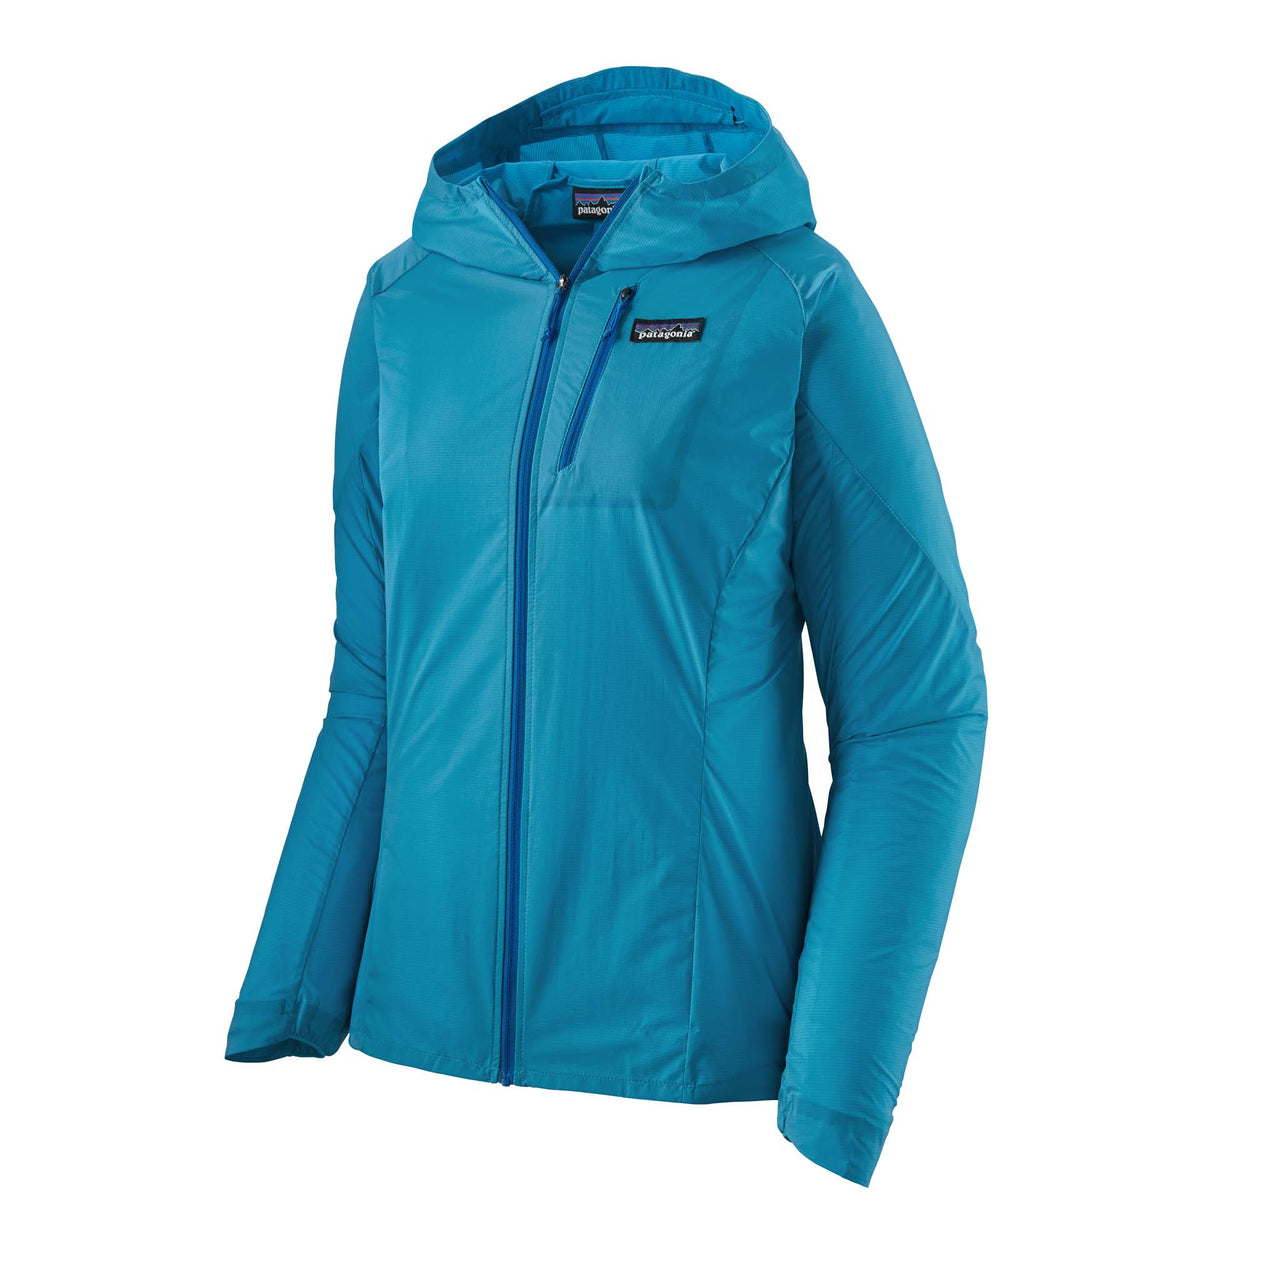 Womens Houdini Air Jacket